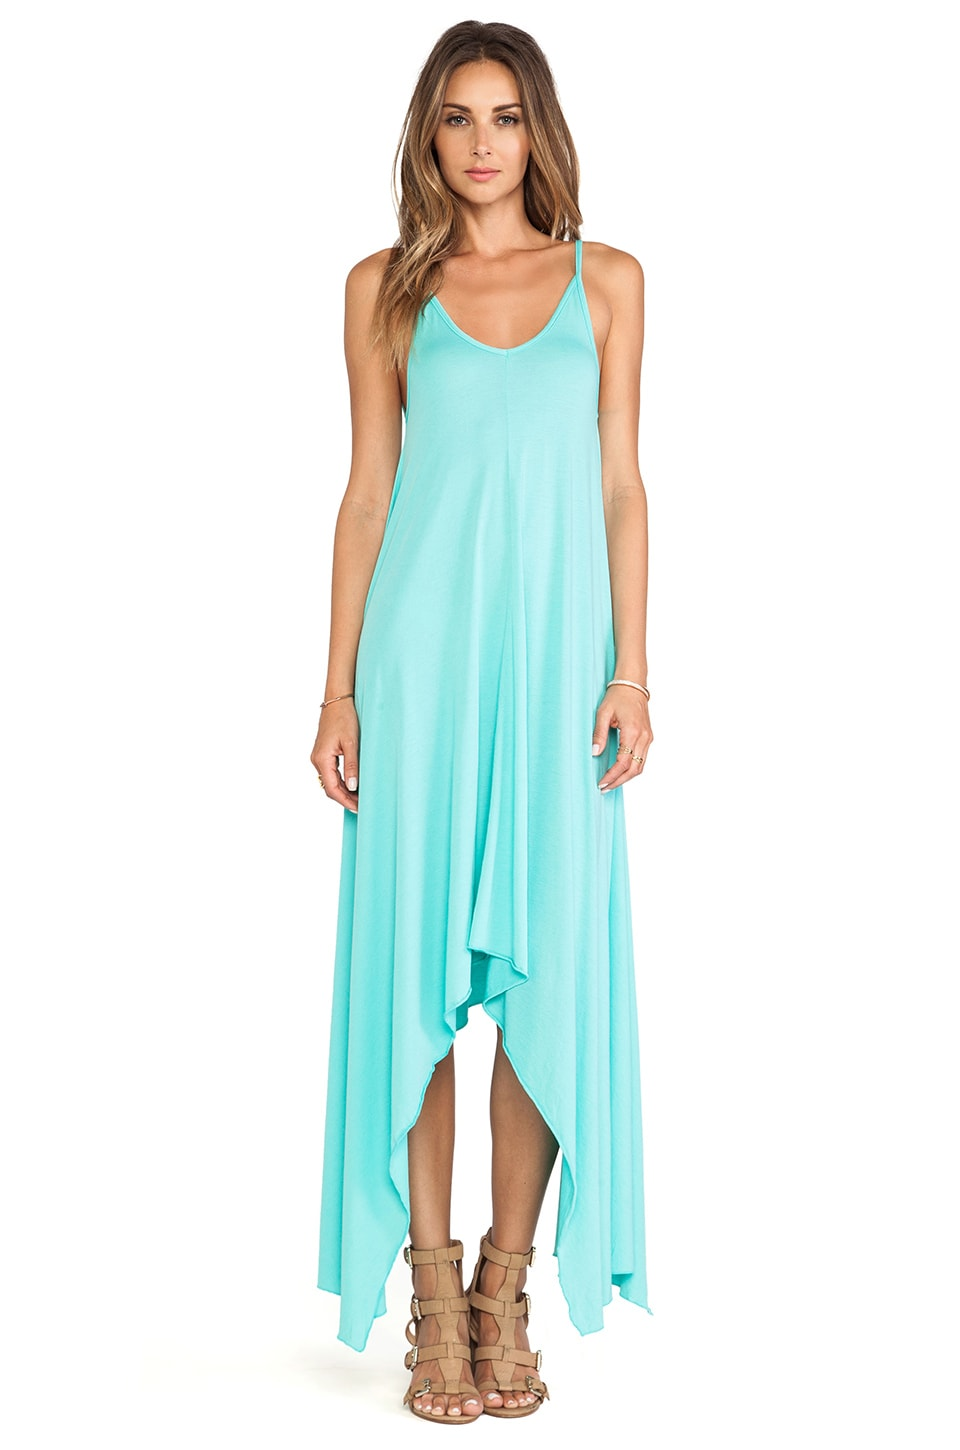 Bobi Modal Jersey Asymmetric Dress in Aqua